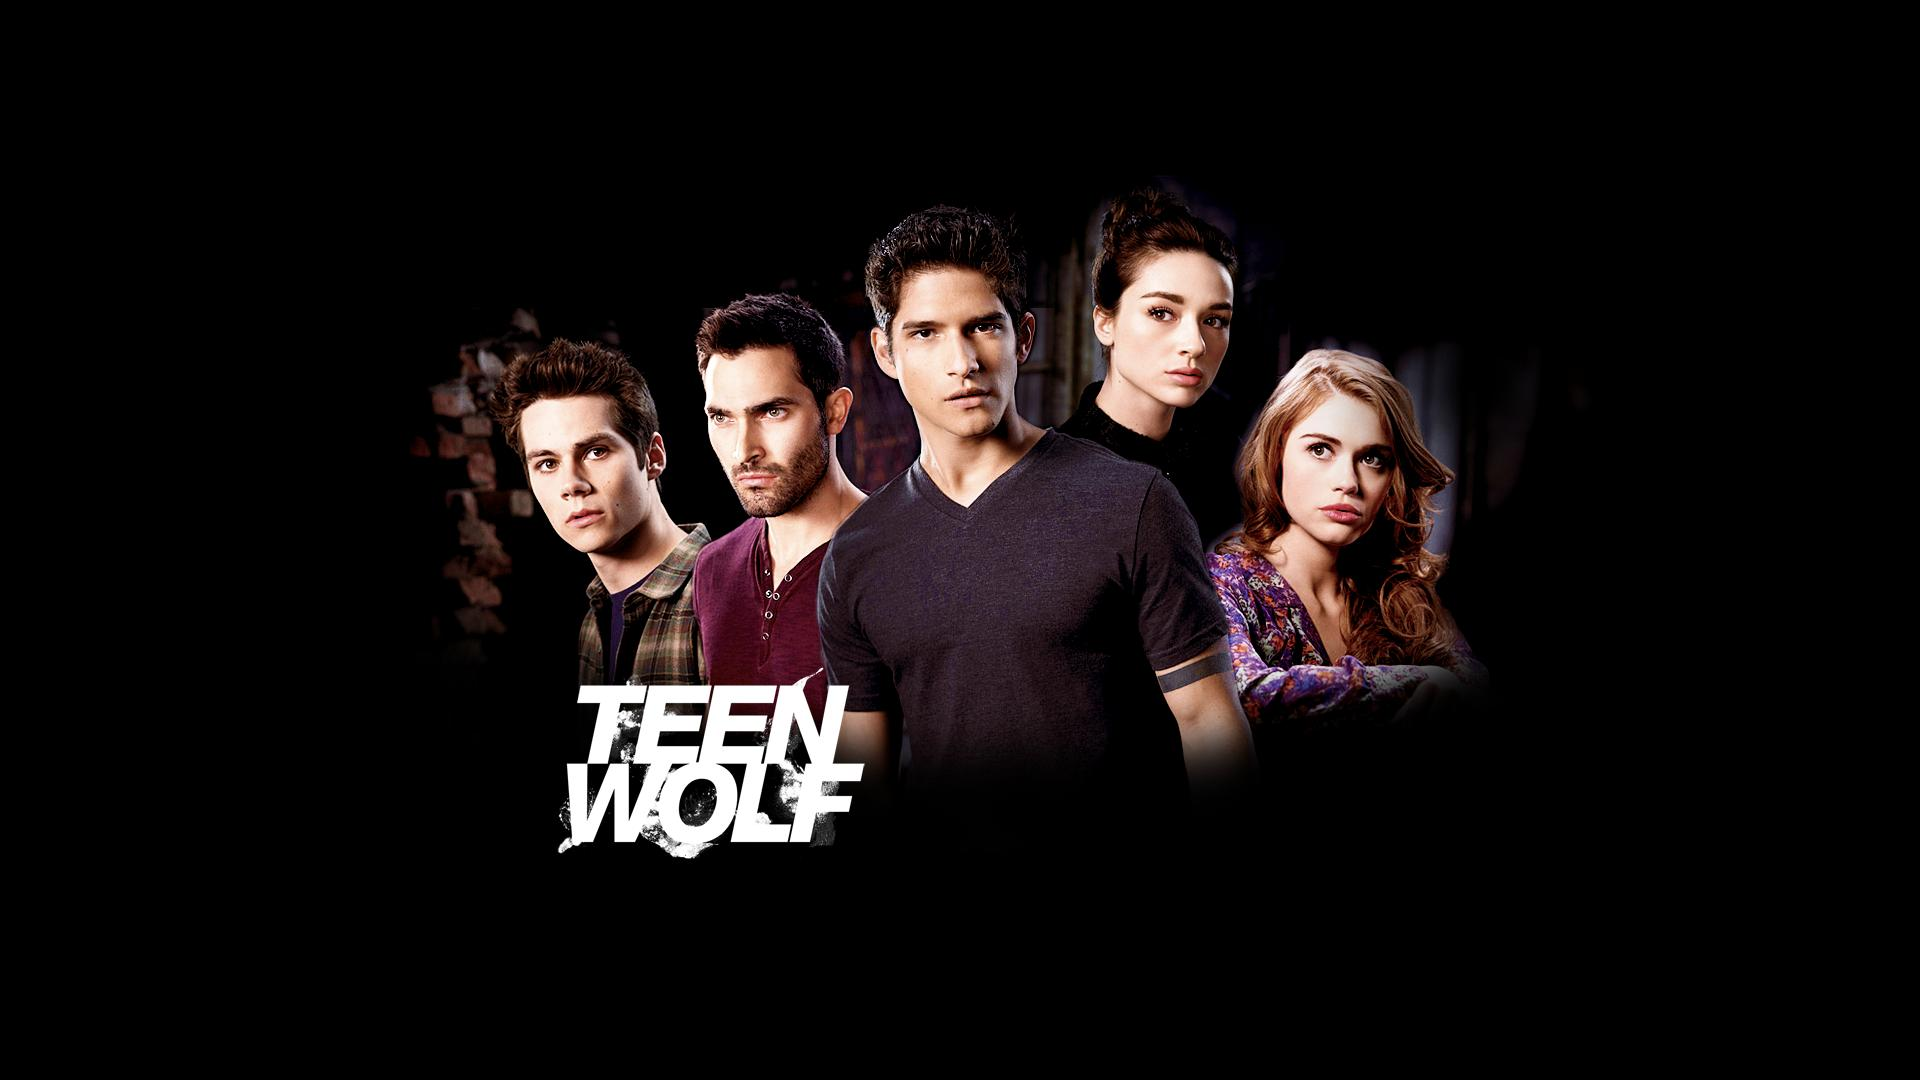 Can teen wolf pictures consider